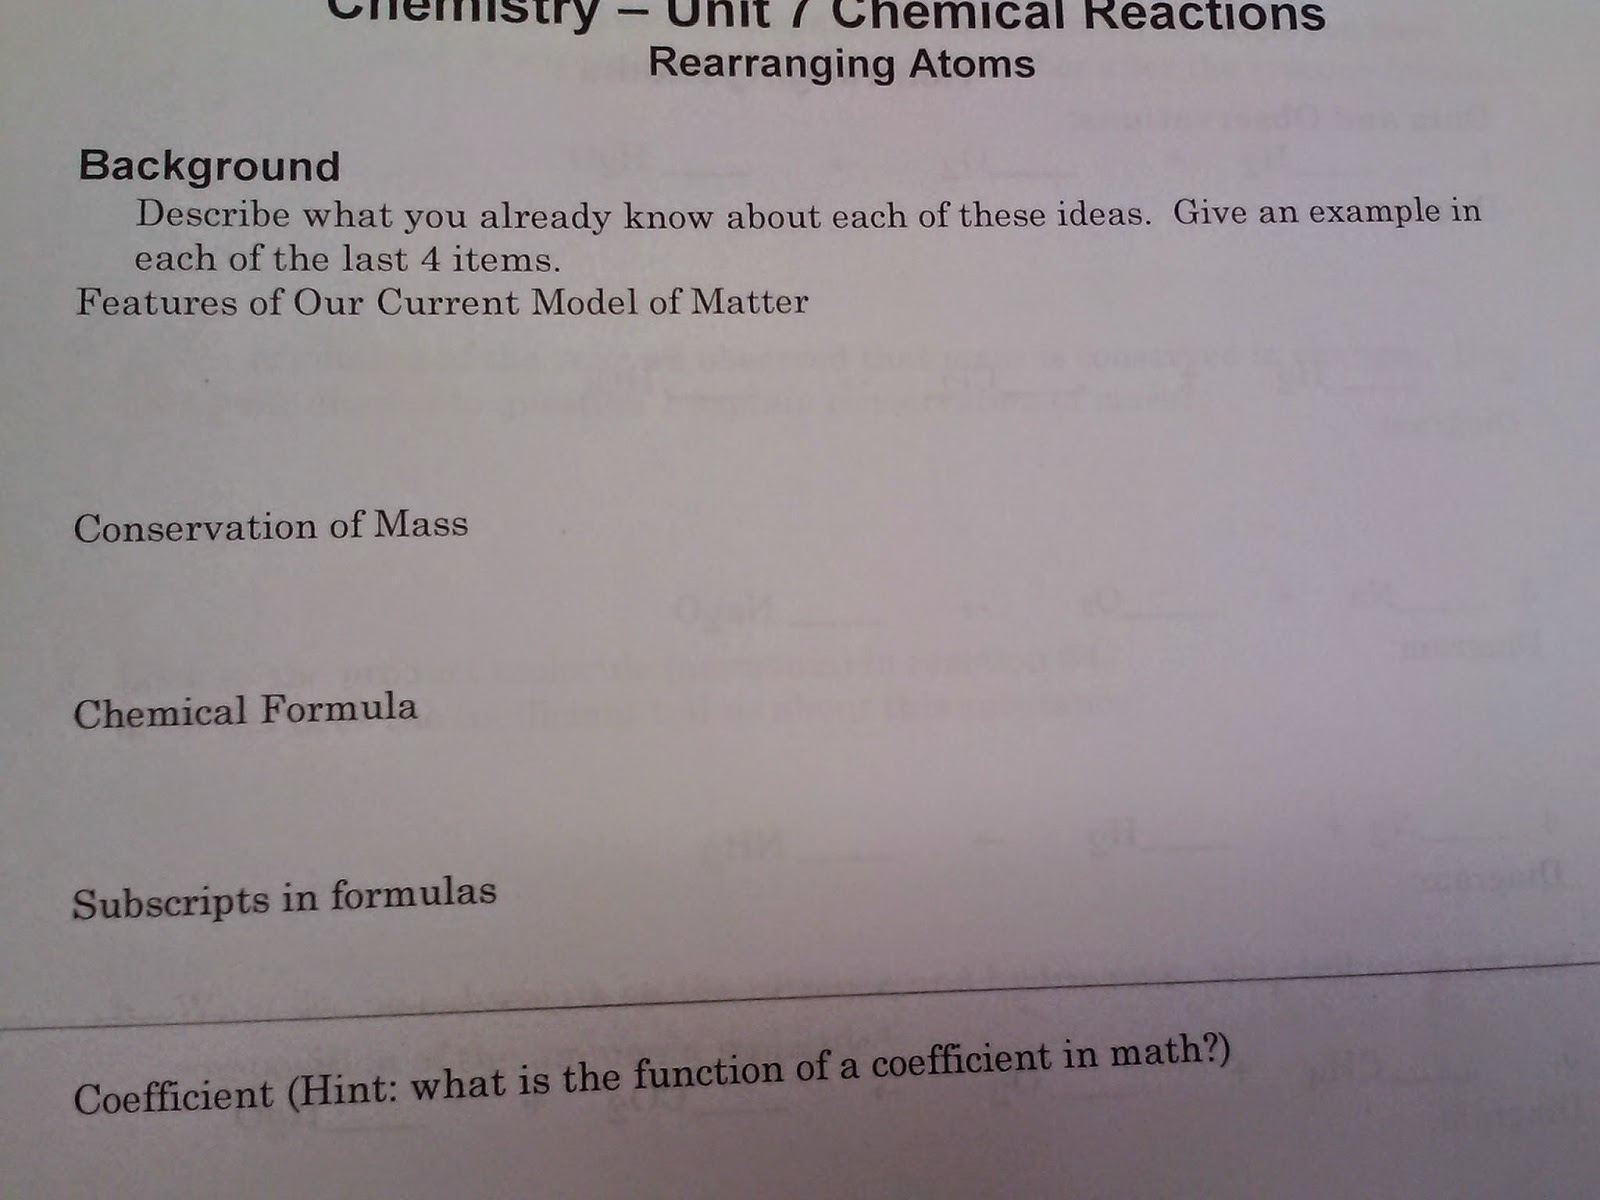 Modeling Chemistry Unit 6 Worksheet 1 Answer Key